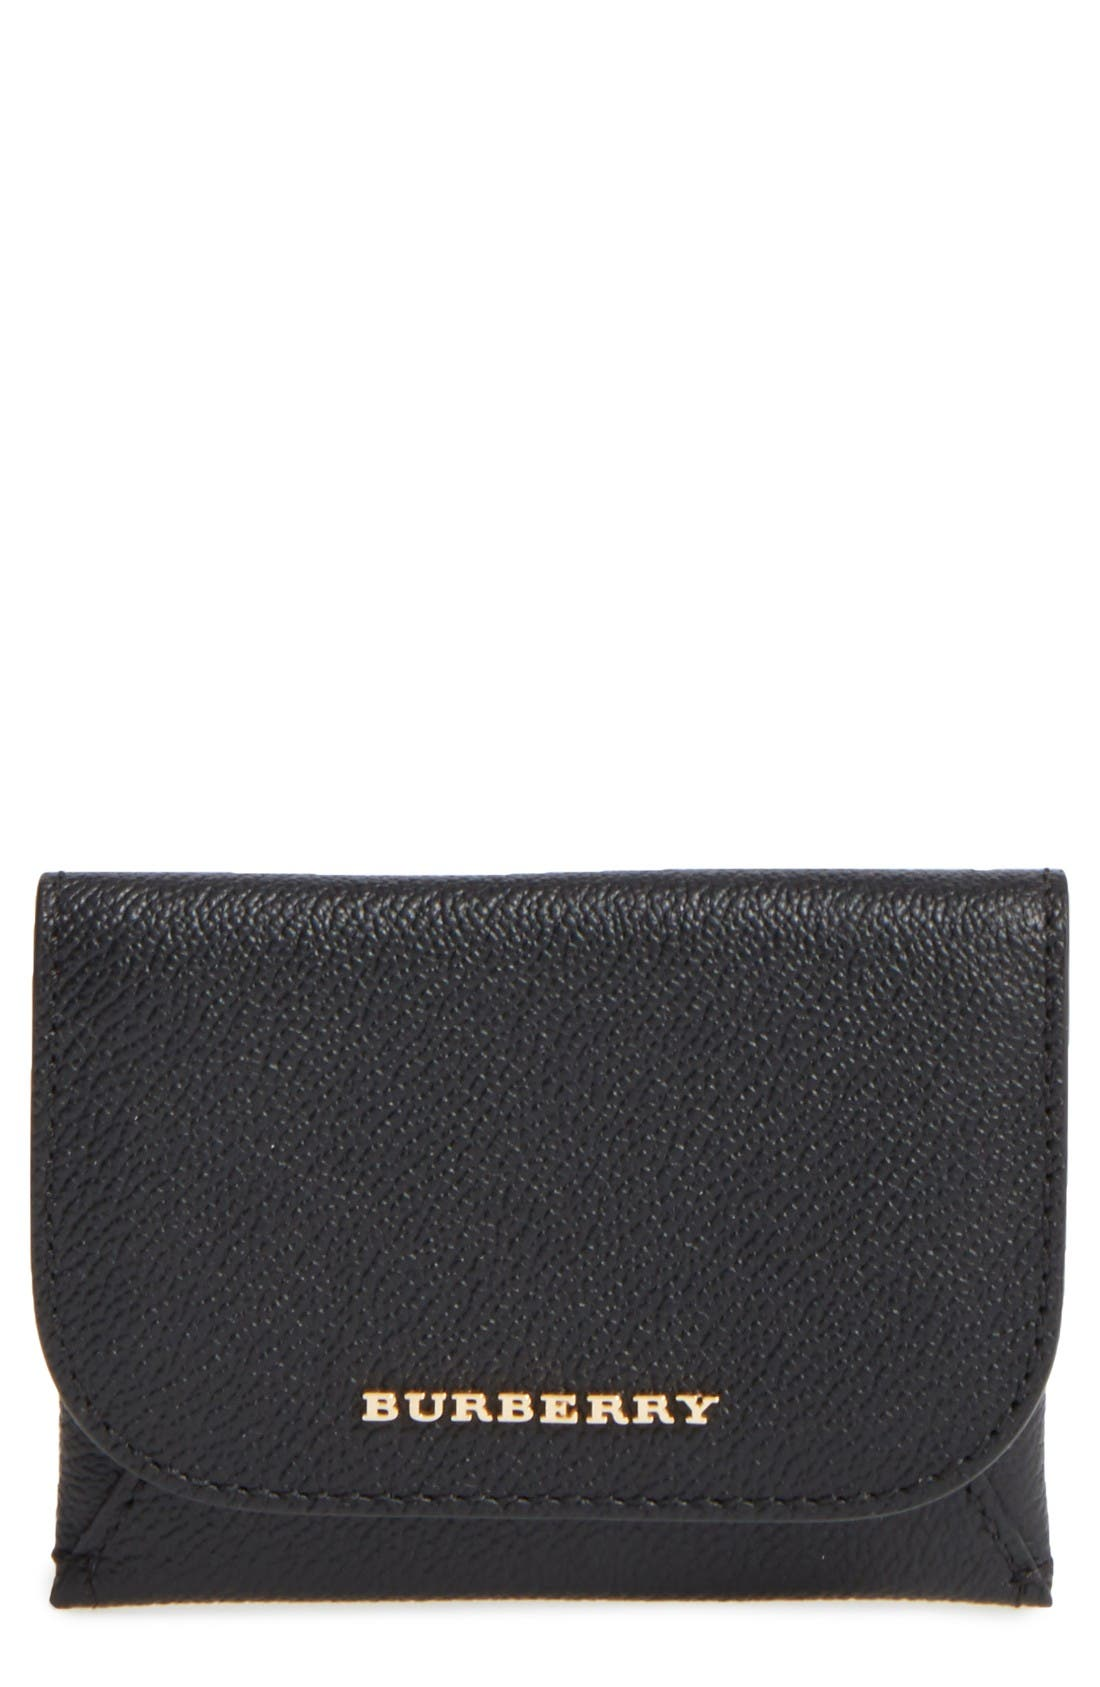 Mayfield Leather Card Case,                             Main thumbnail 1, color,                             Black